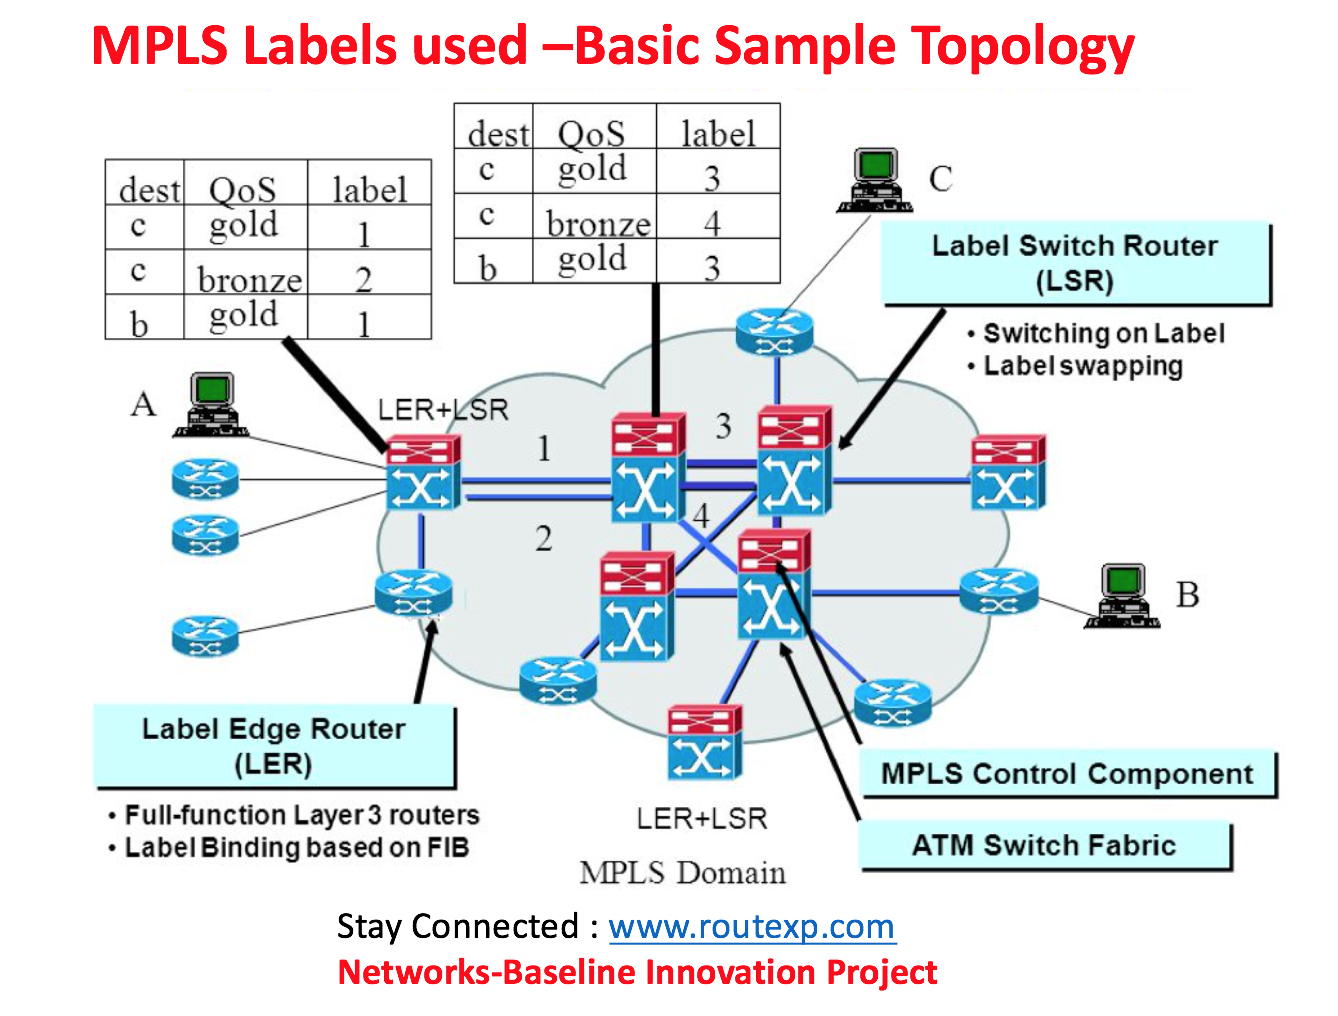 Mpls Network Diagram Short Note On Mpls Special Purpose Label Values Route Xp Networks